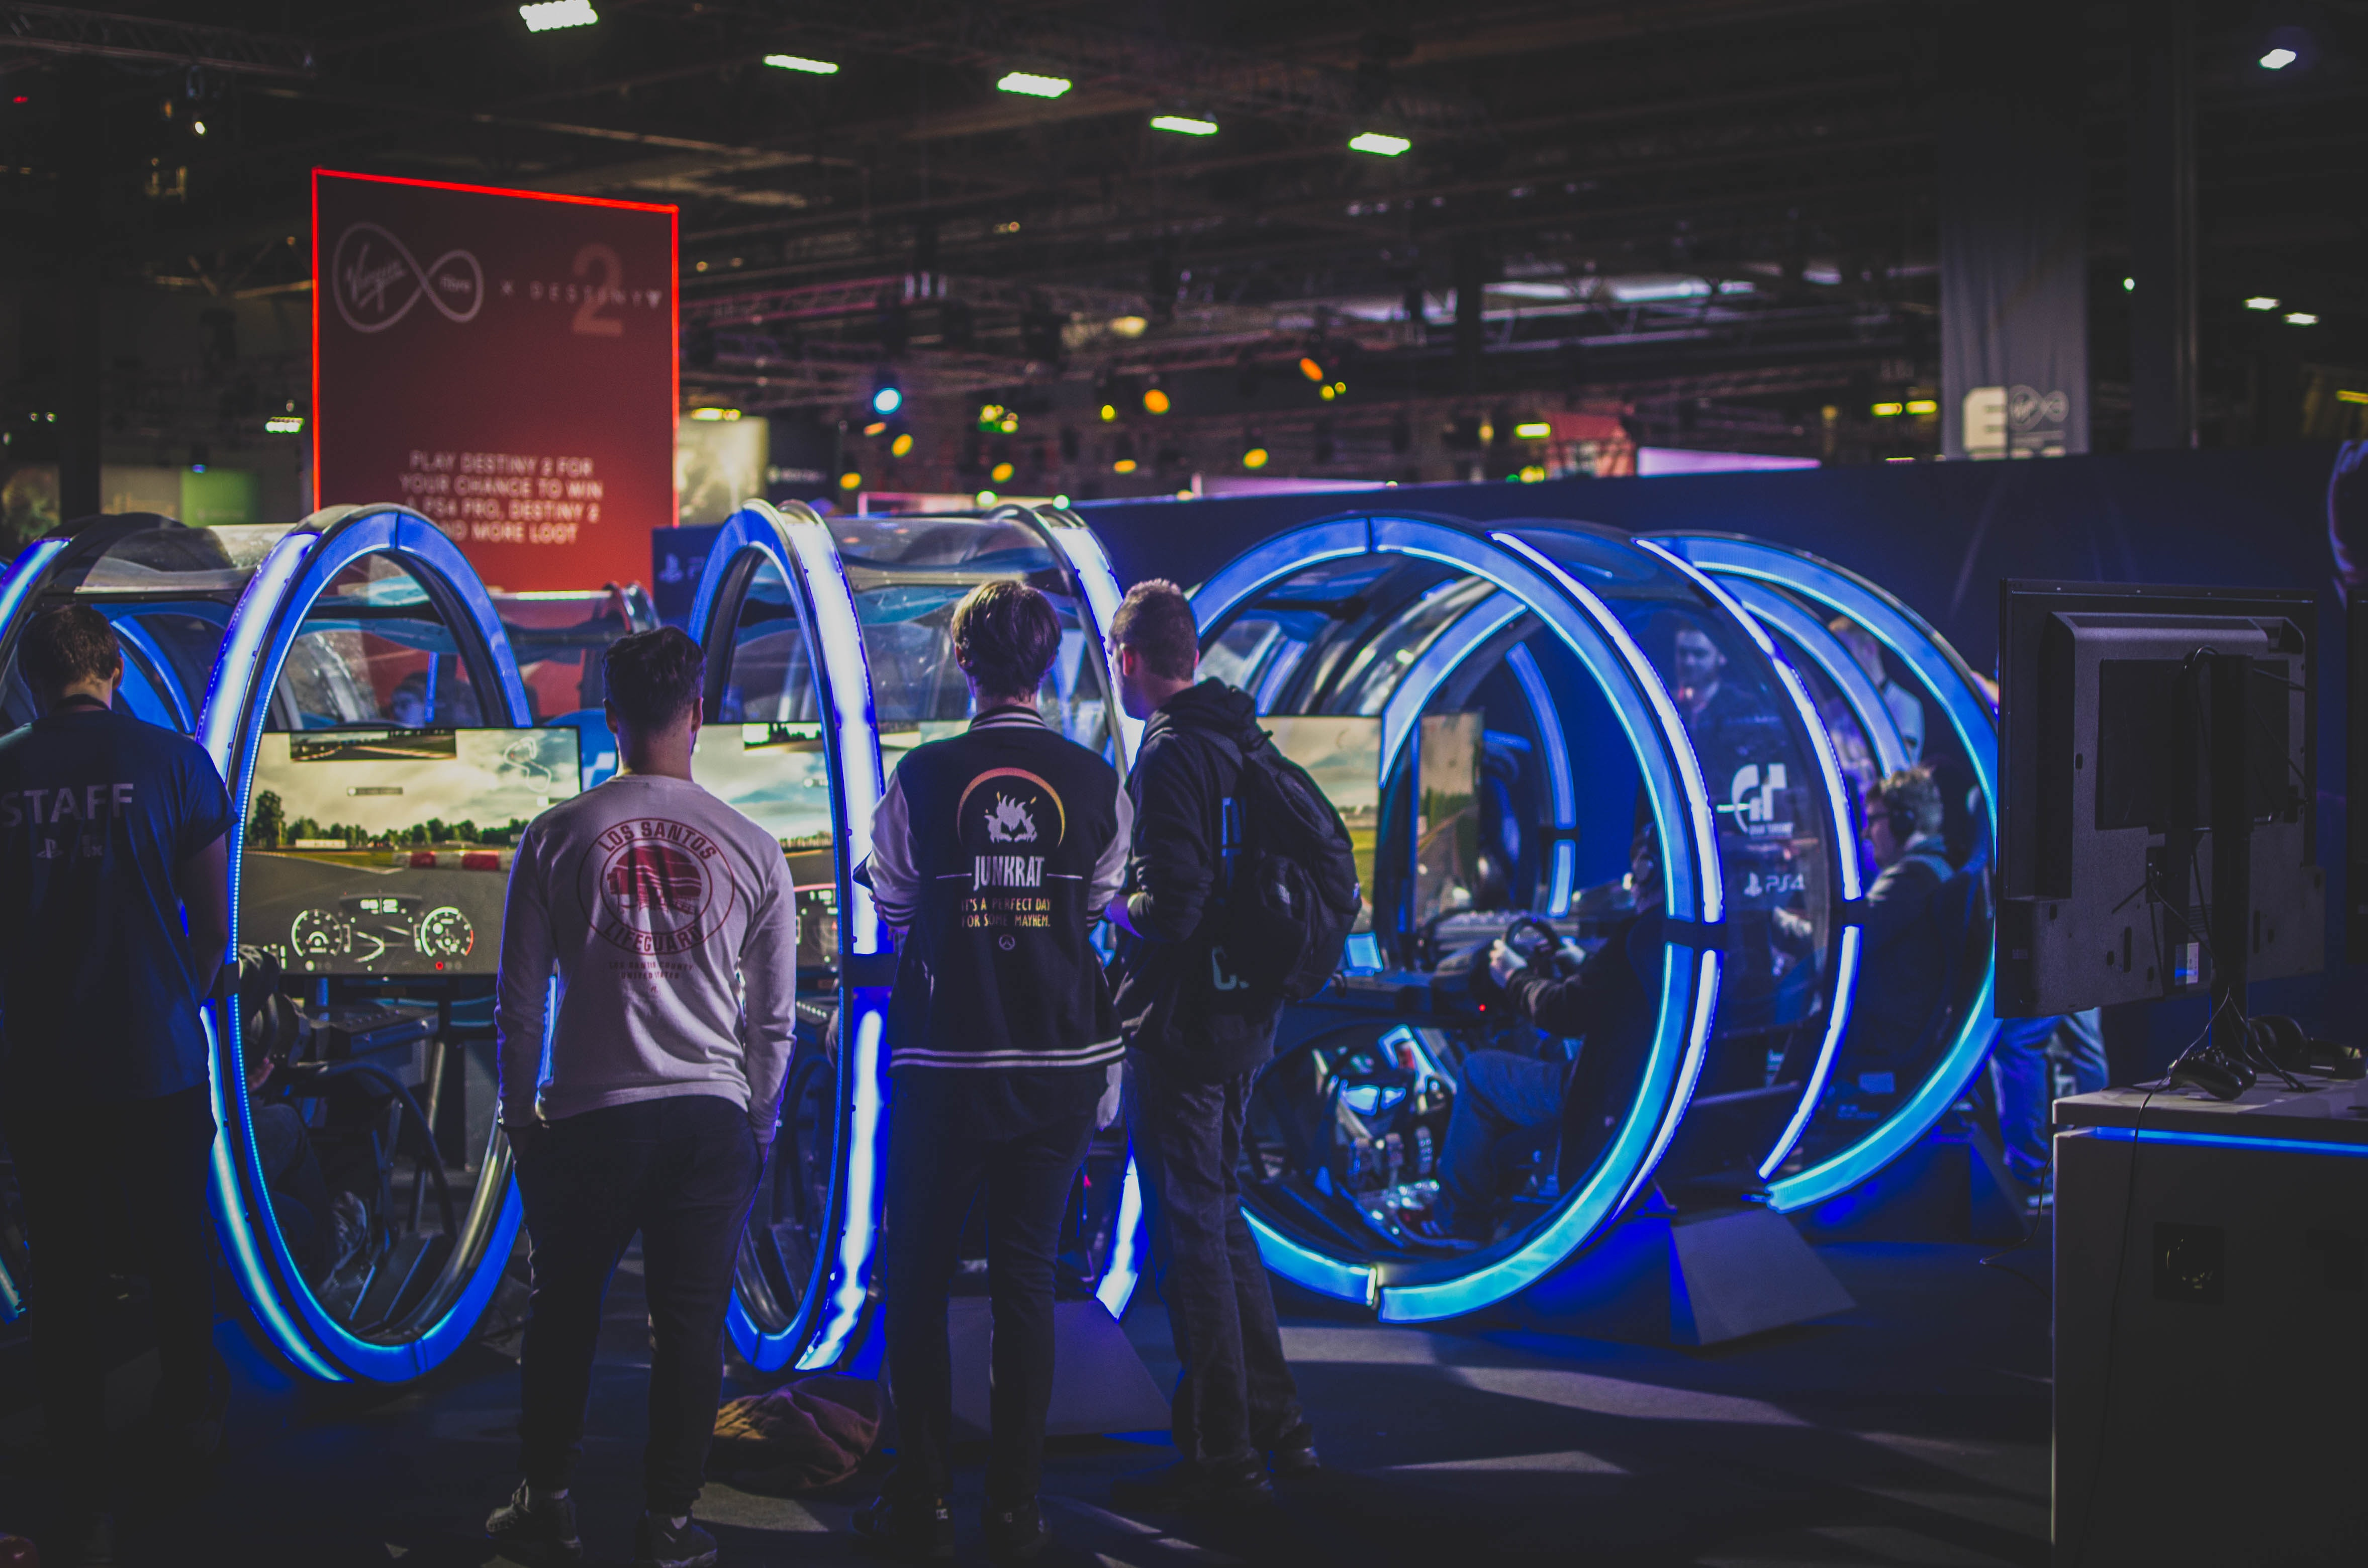 A group of e-athletes looks at a neon-lit racing arcade game